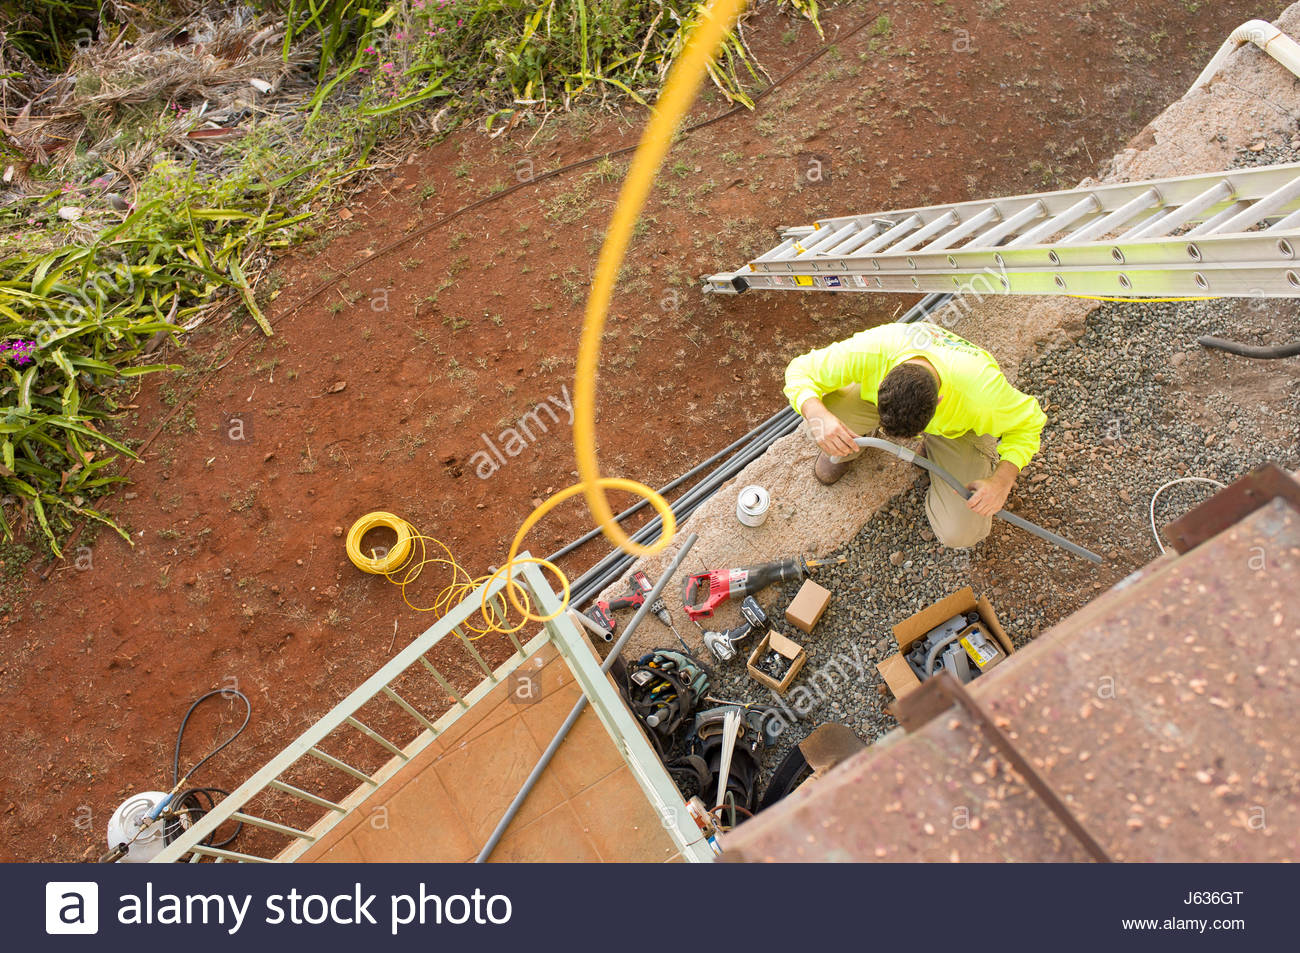 Wire Conduit Stock Photos Images Alamy Surface Wiring Electrician Constructing A Out Of Plastic Pvc Pipe Honolulu Oahu Hawaii